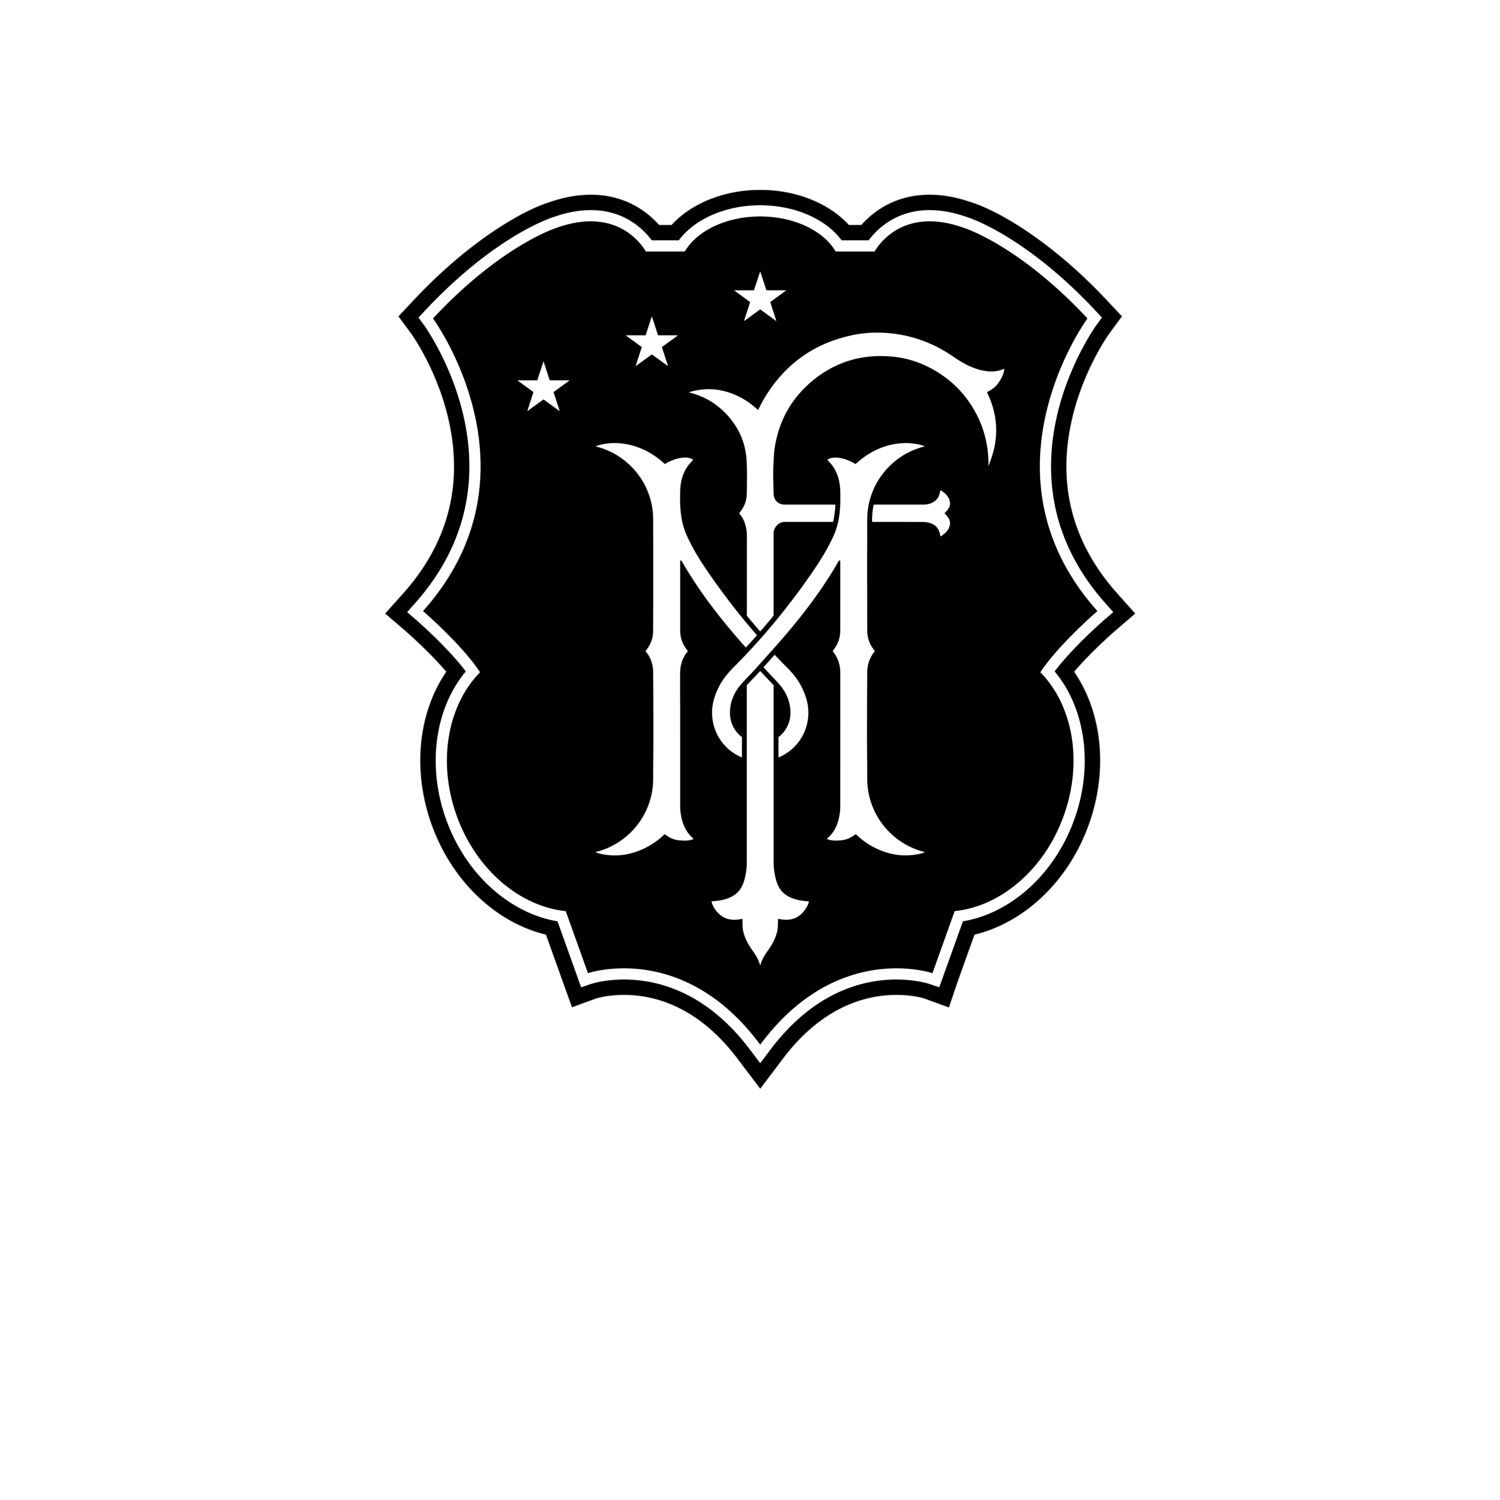 match fit performance